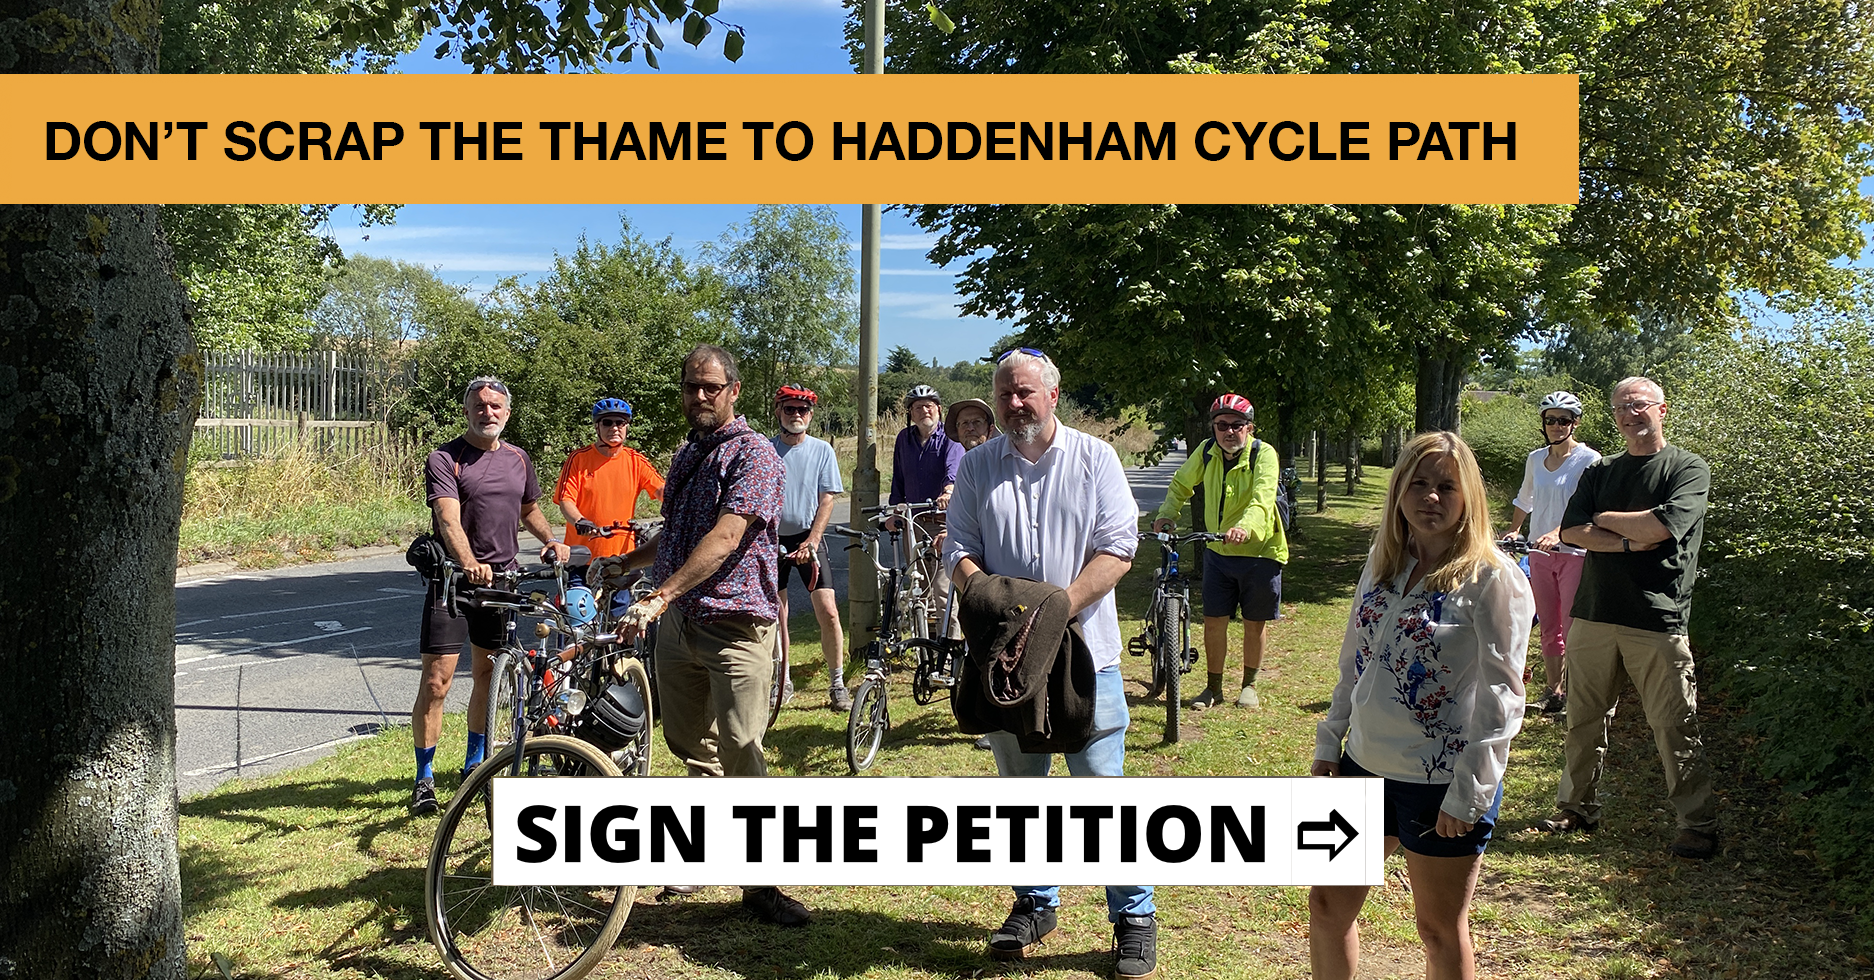 Don't scrap the Thame to Haddenham Cycle Path 🚲